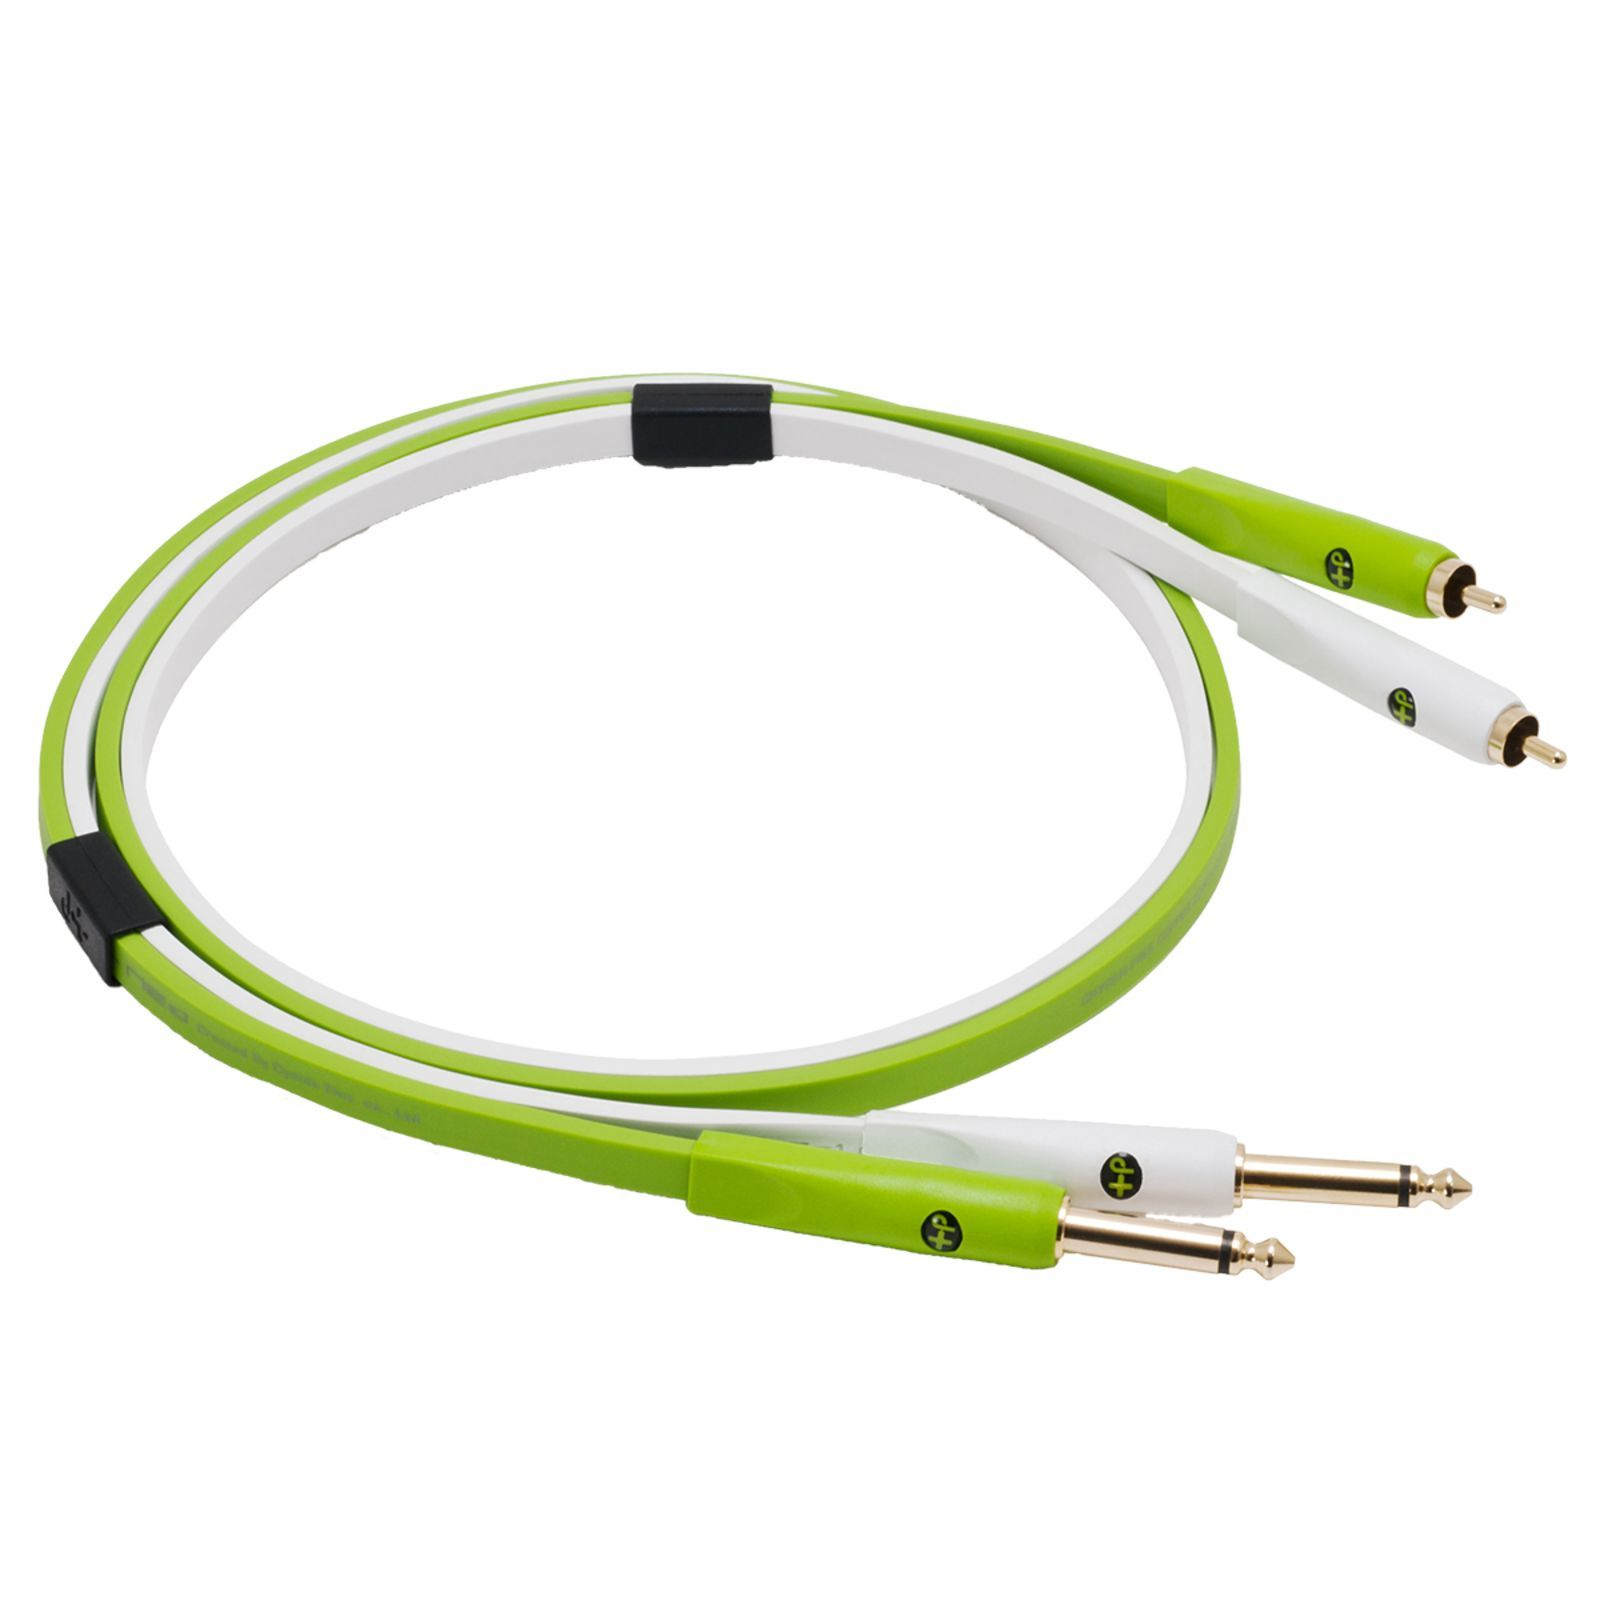 NEO by Oyaide d+ Stereo Cinch/2x6,3mm jack kabel, Class B, 3,0m lengte Productafbeelding